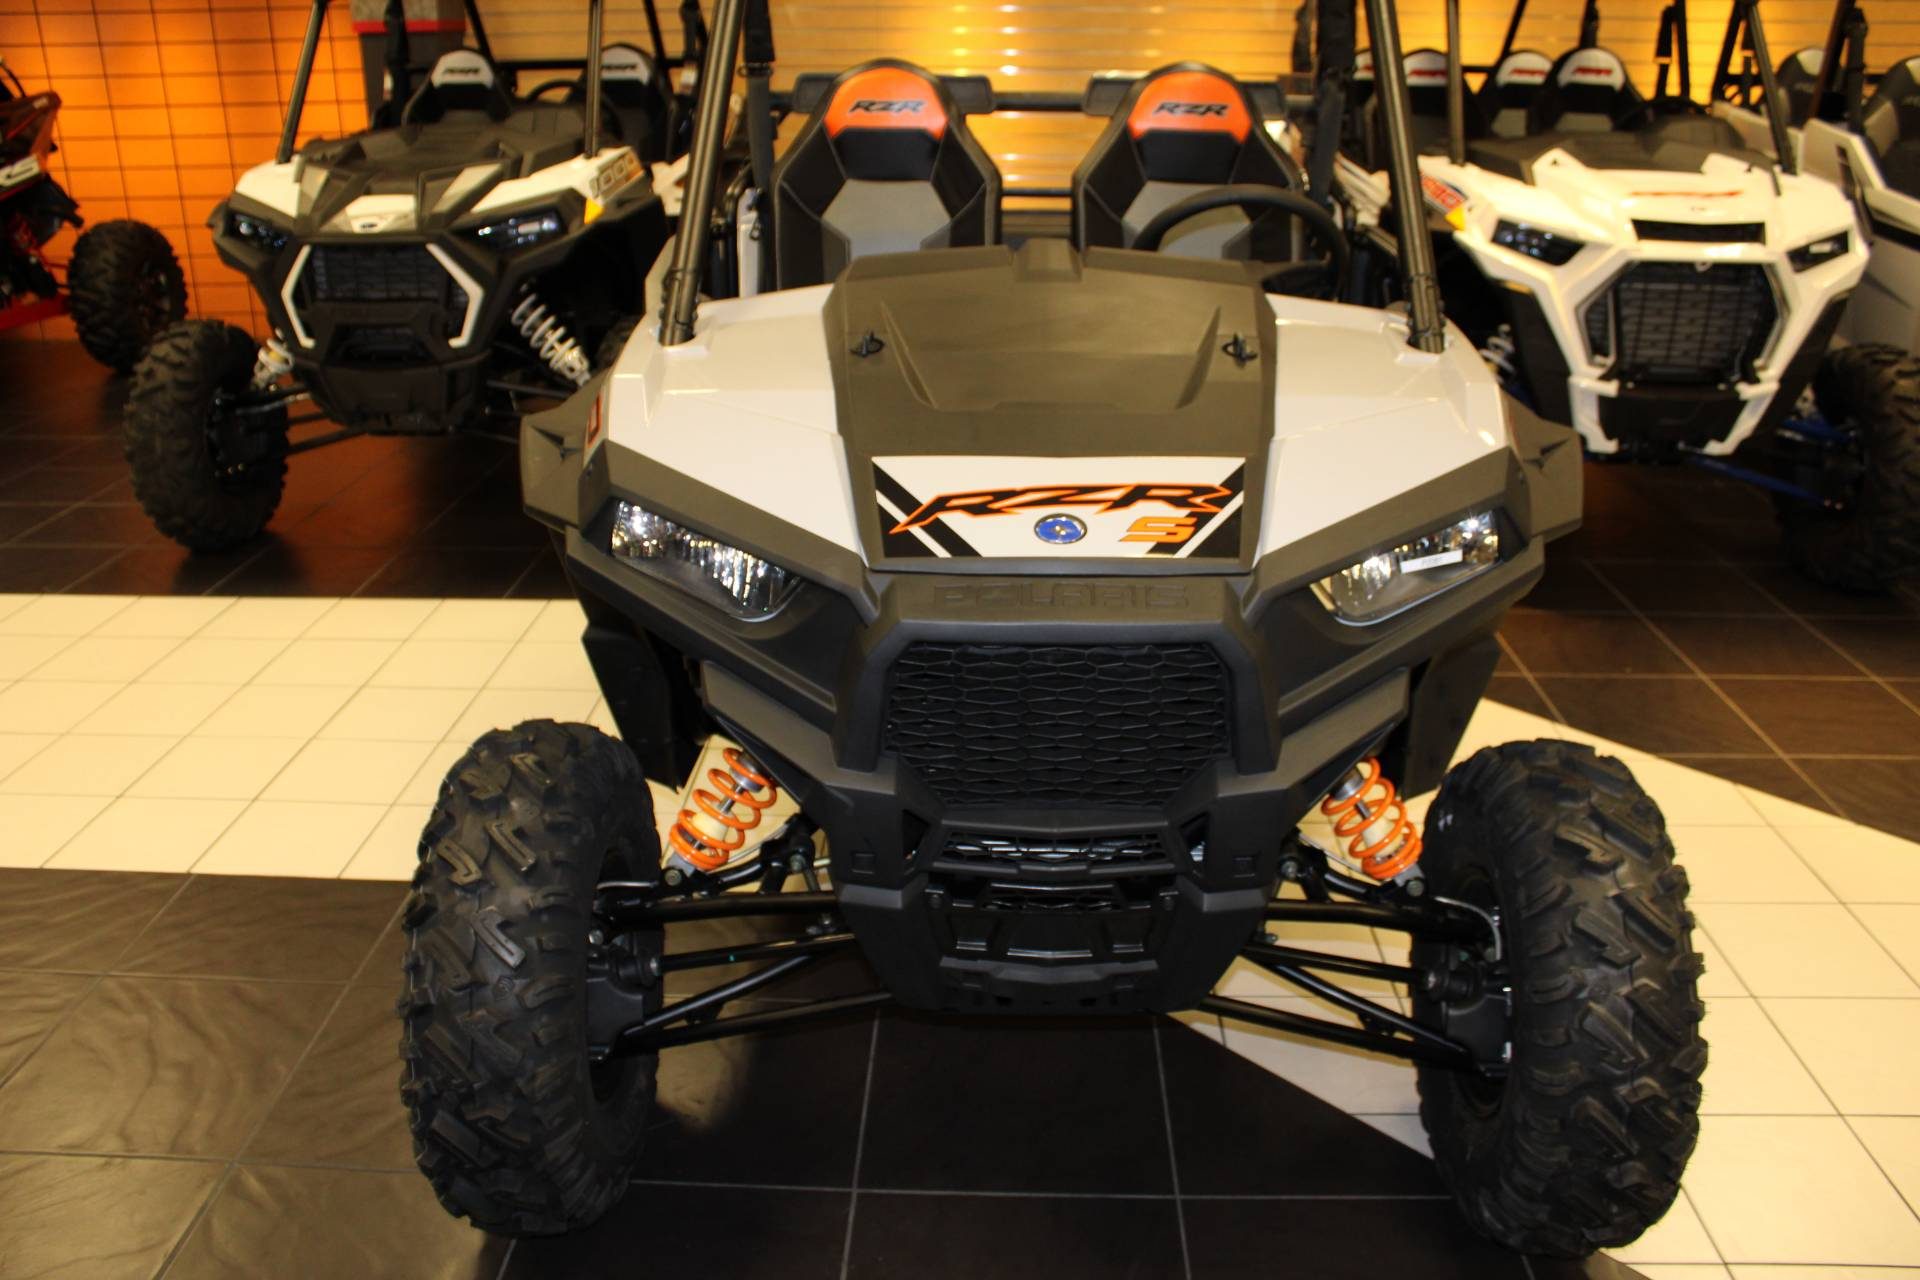 2019 Polaris RZR S 900 EPS in Chanute, Kansas - Photo 5